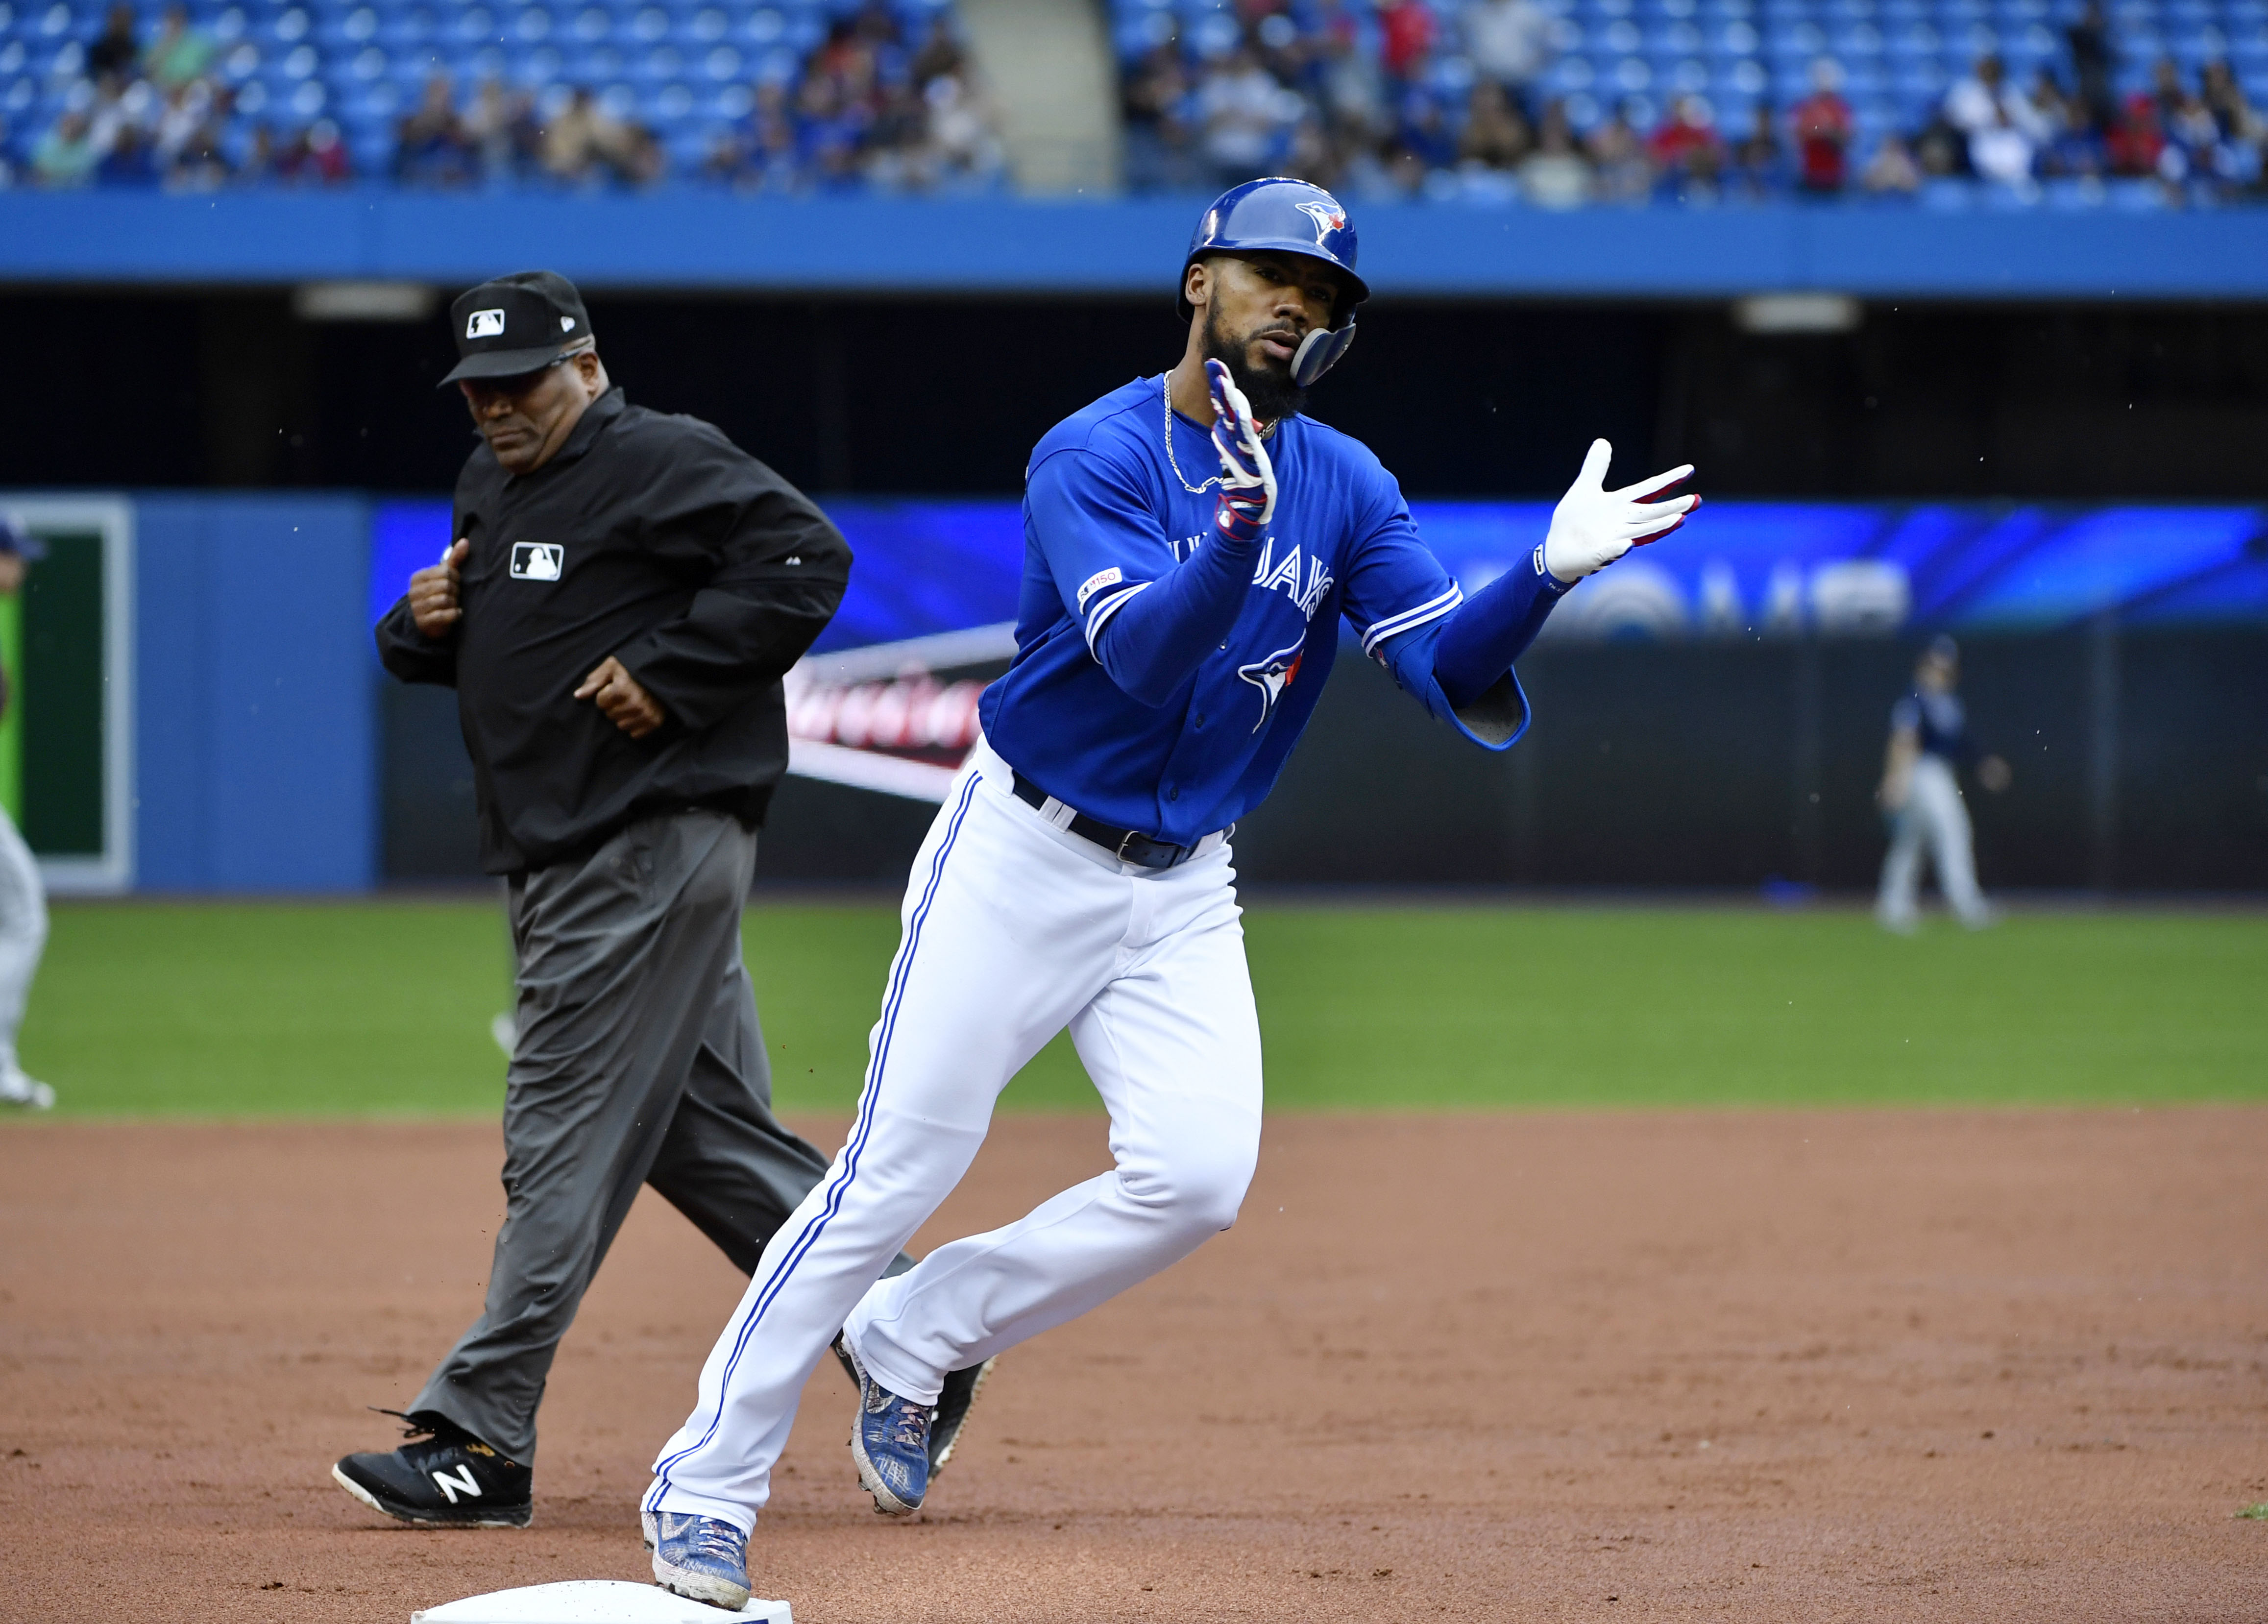 Blue Jays outfielder Teoscar Hernandez diagnosed with coronavirus